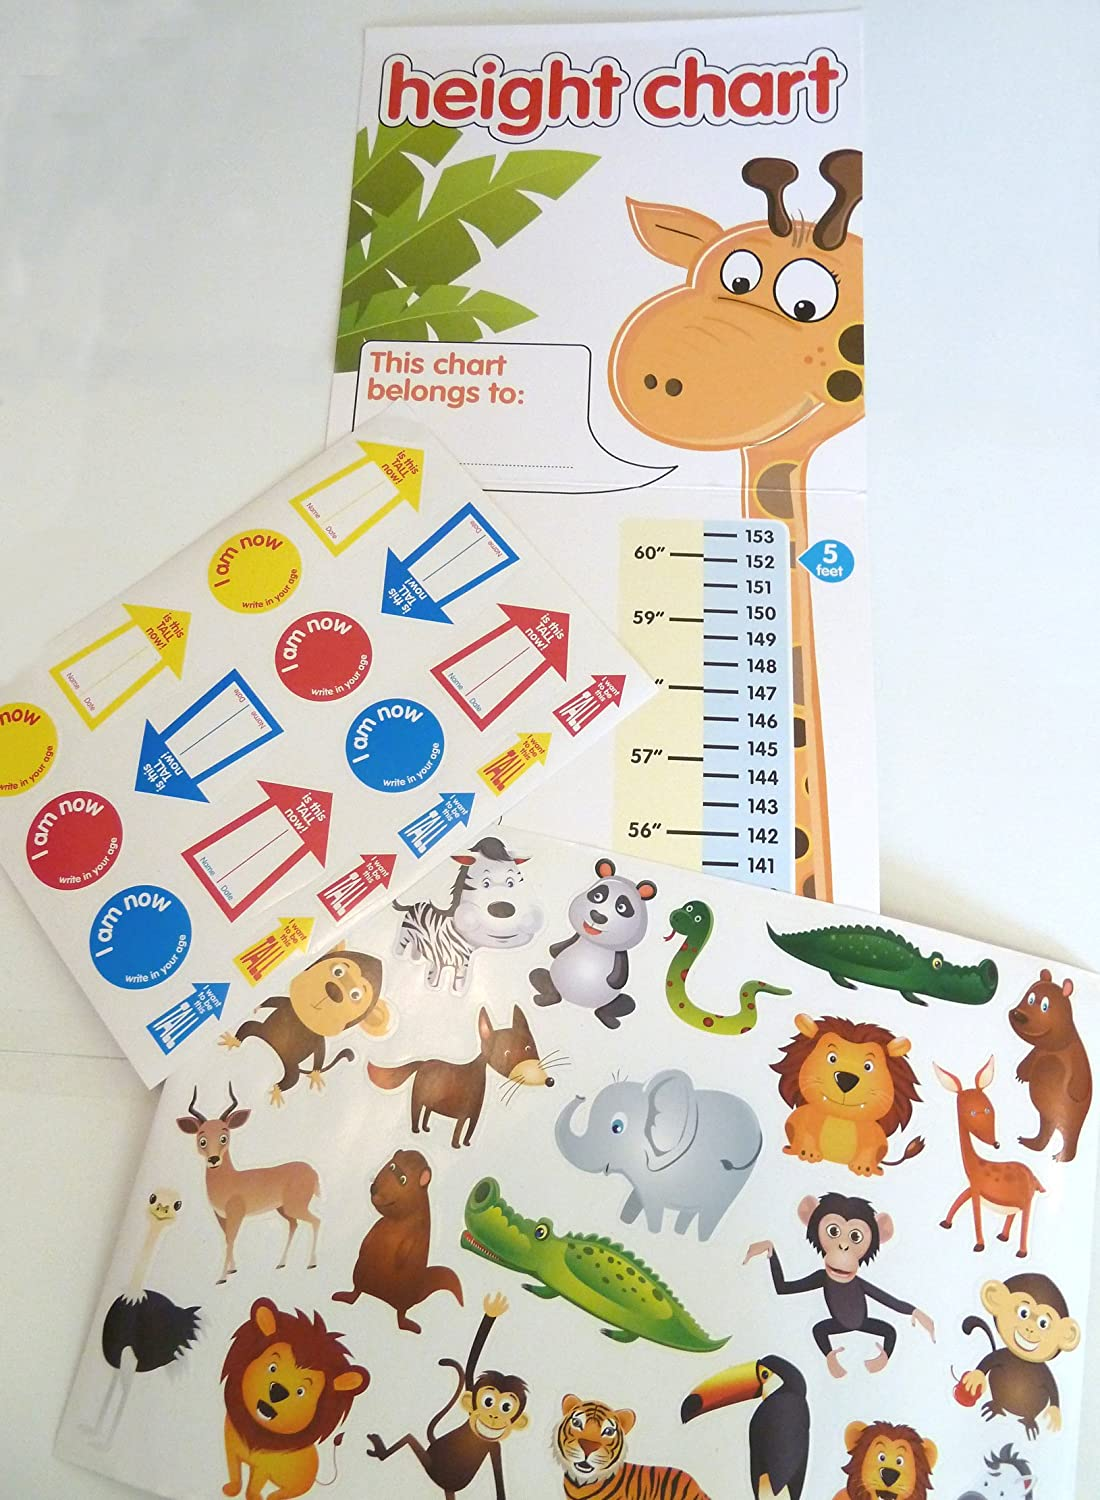 Childrens Height Chart with over 40 Stickers